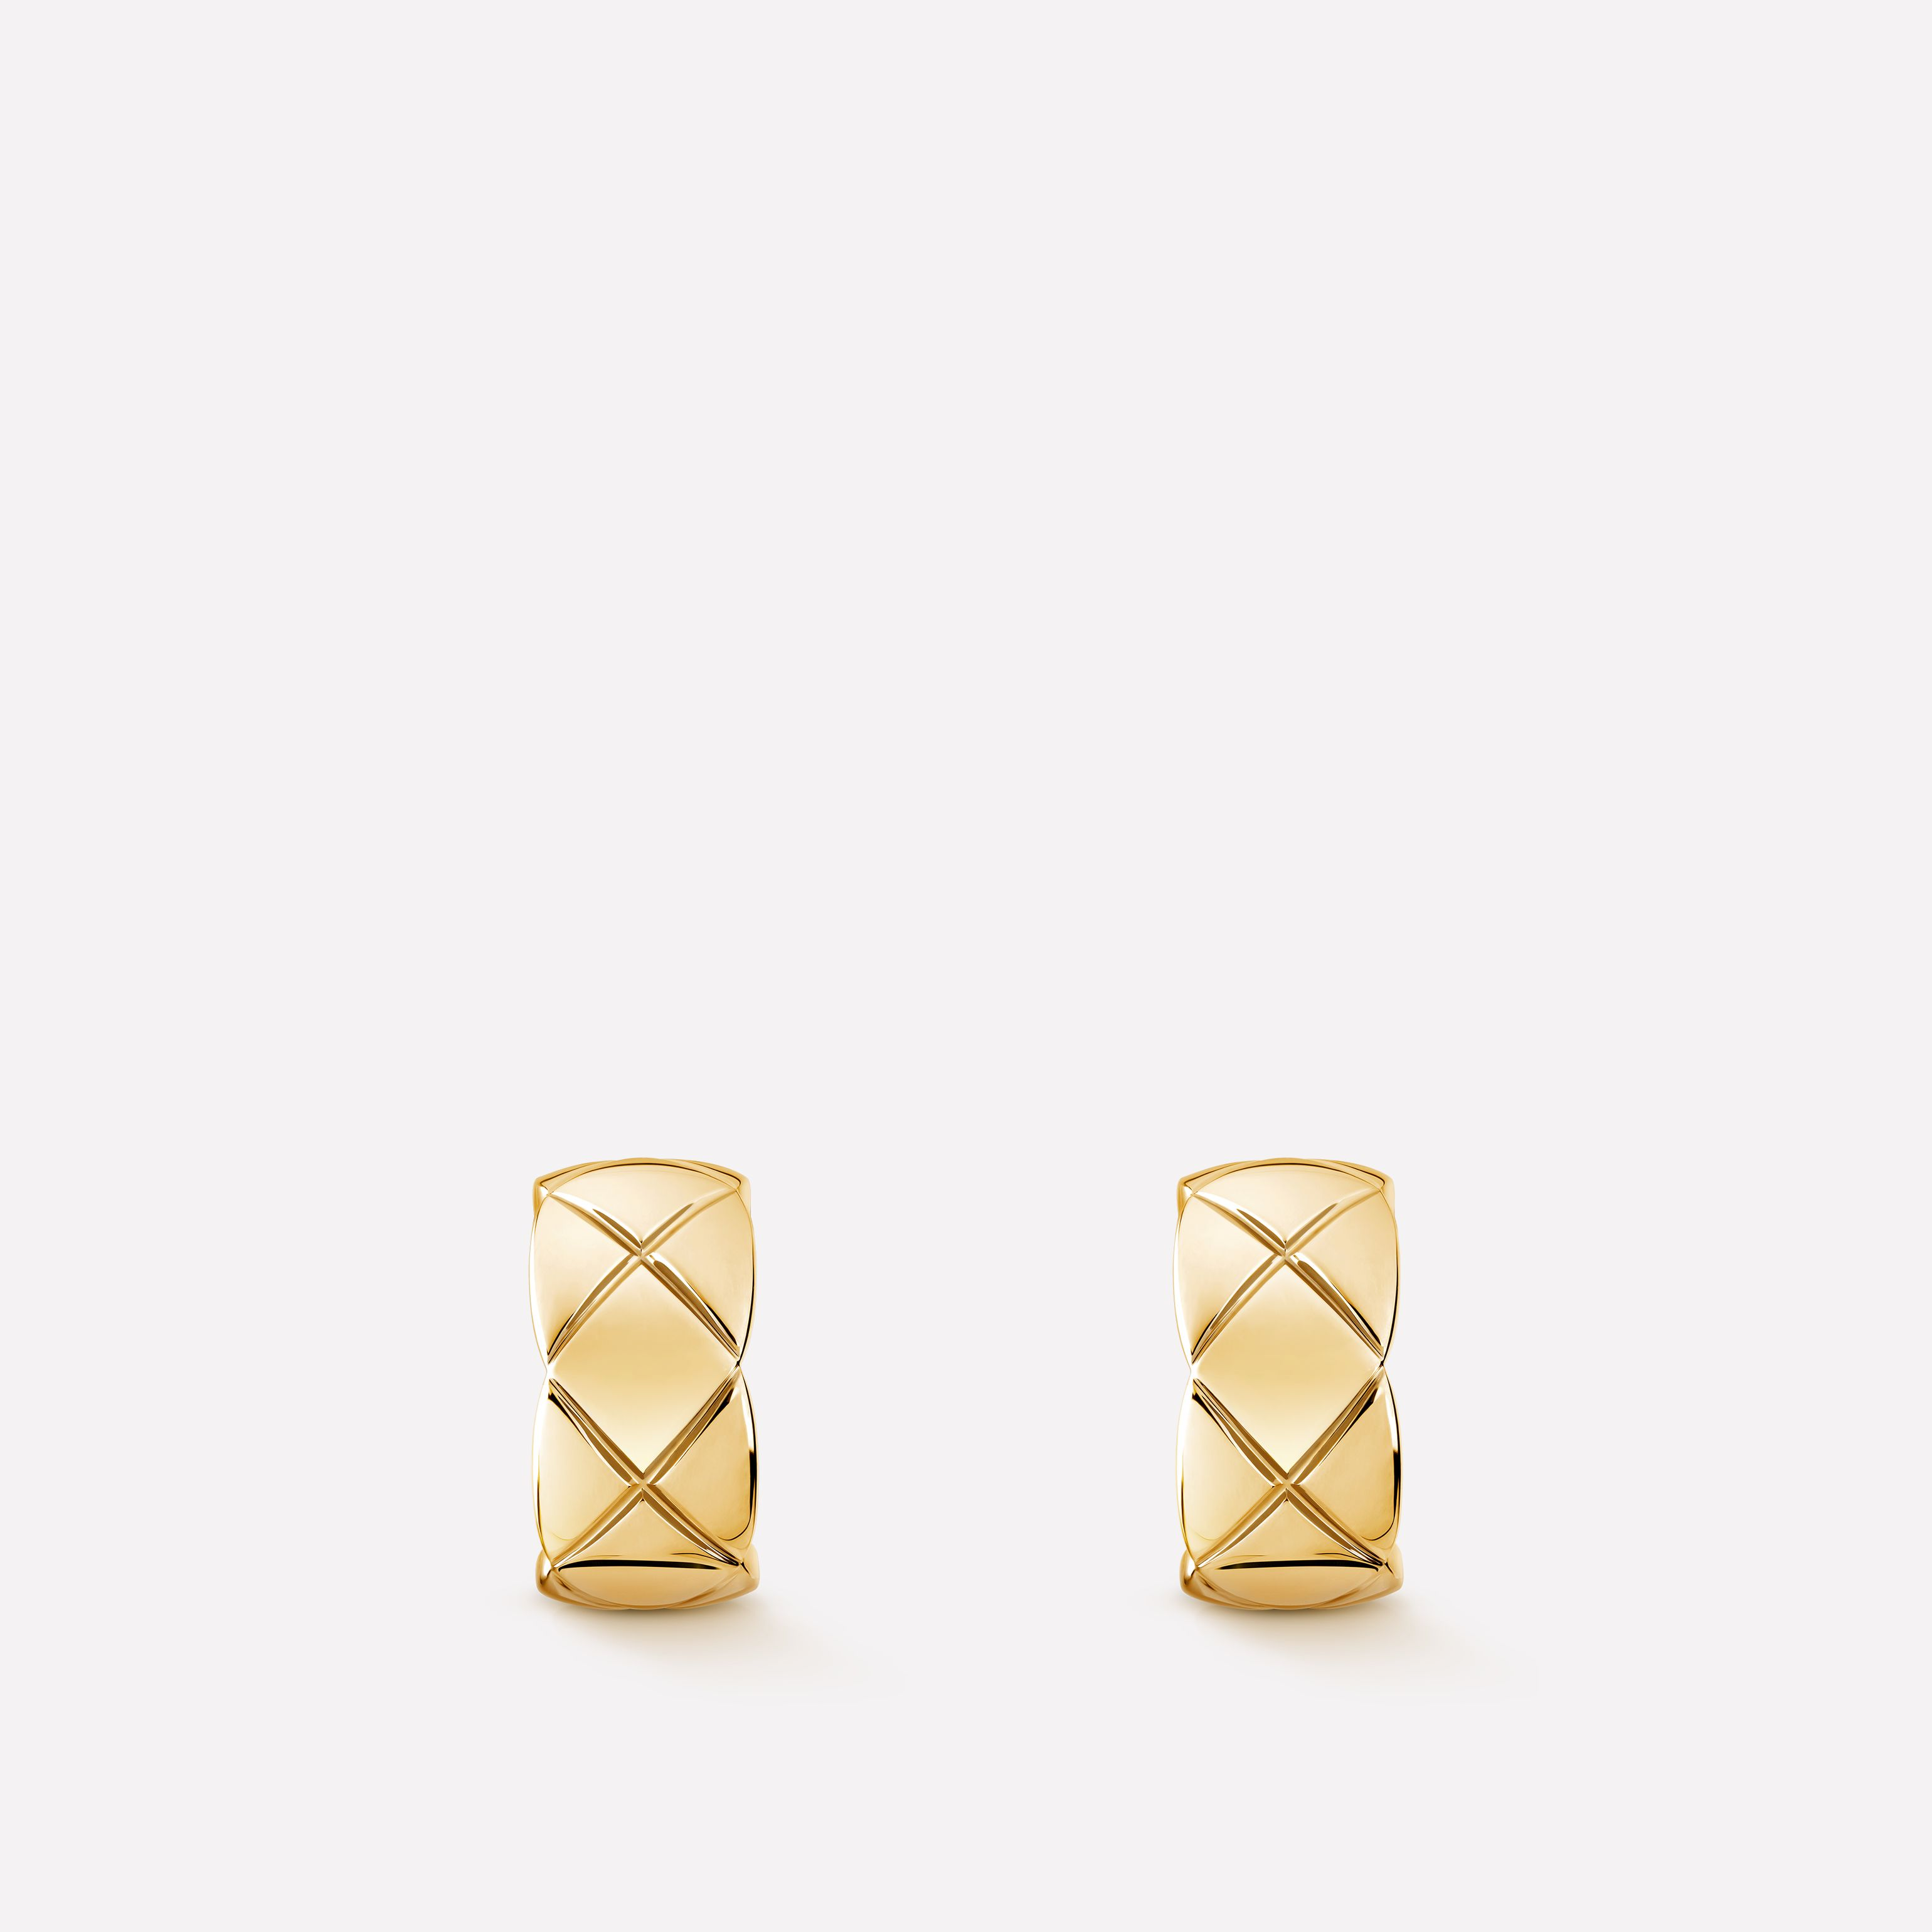 See Full Size Image Coco Crush Earrings J11134 Front View Standard